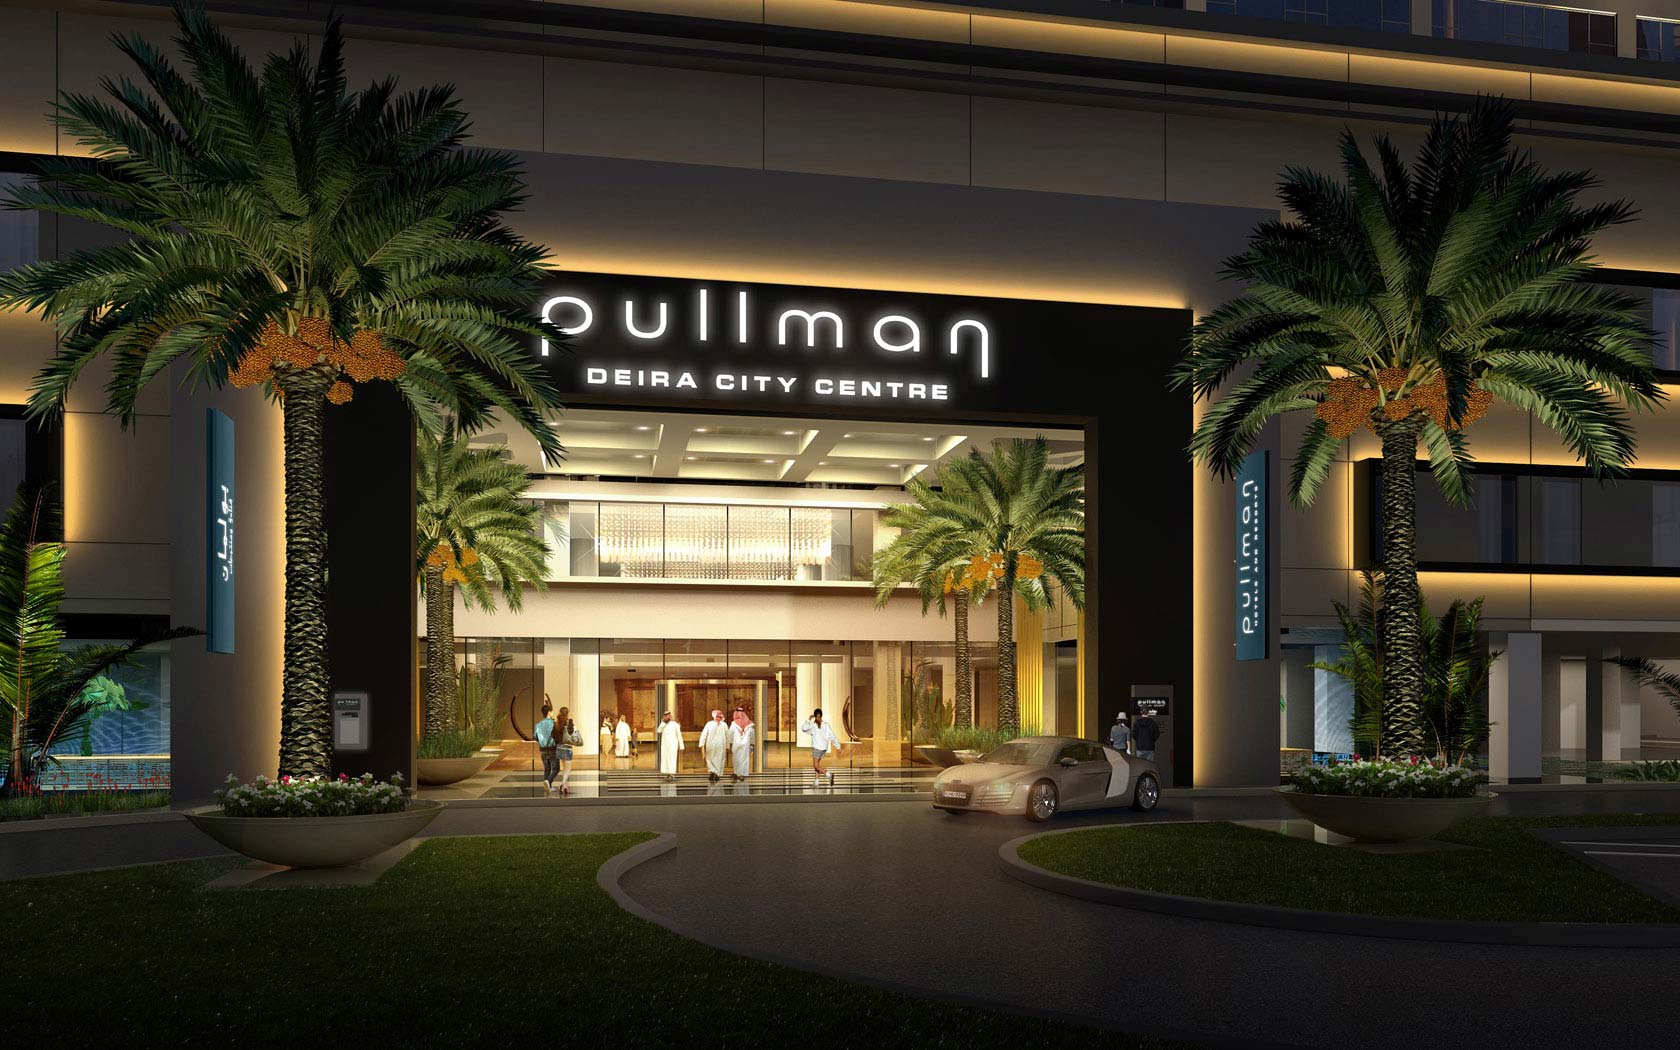 Delta lighting solutions projects pullman hotel for Pullman hotel